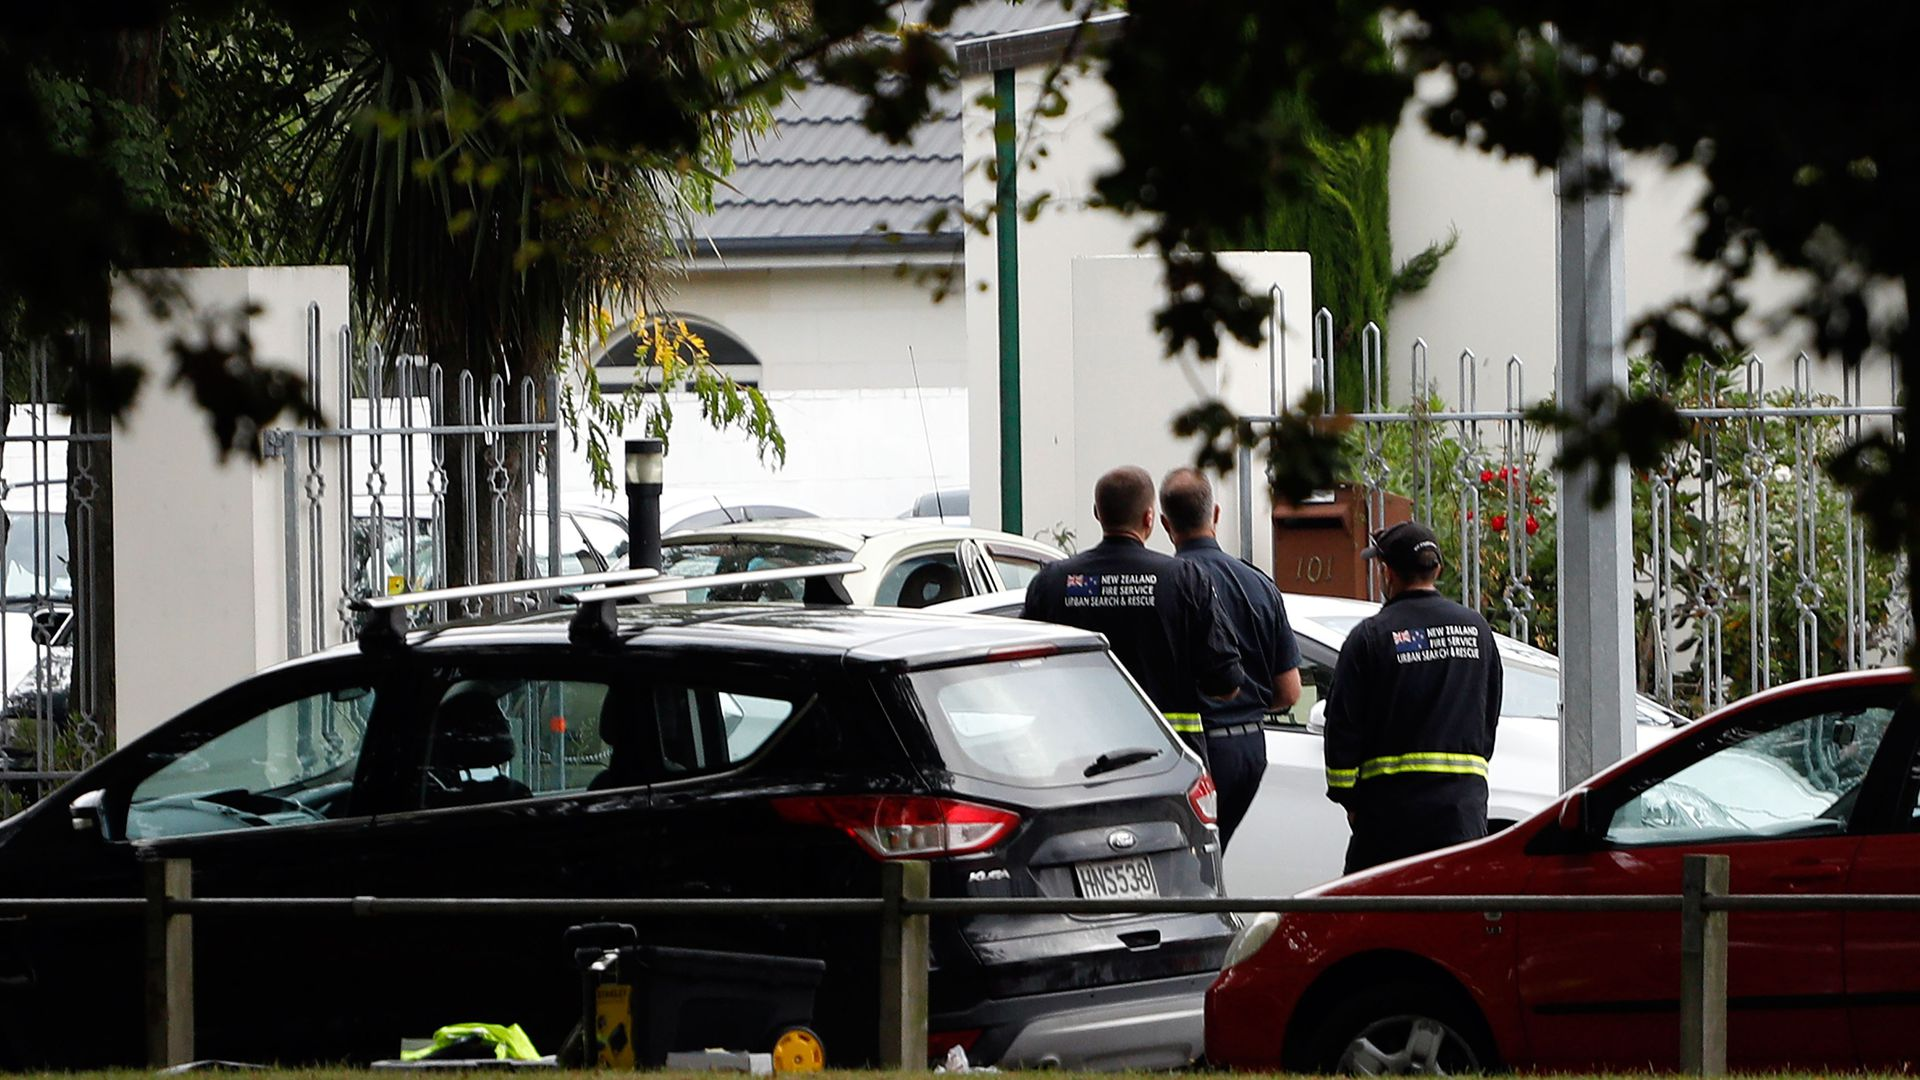 New Zealand police stand outside one of the mosques that was targeted in the shootings